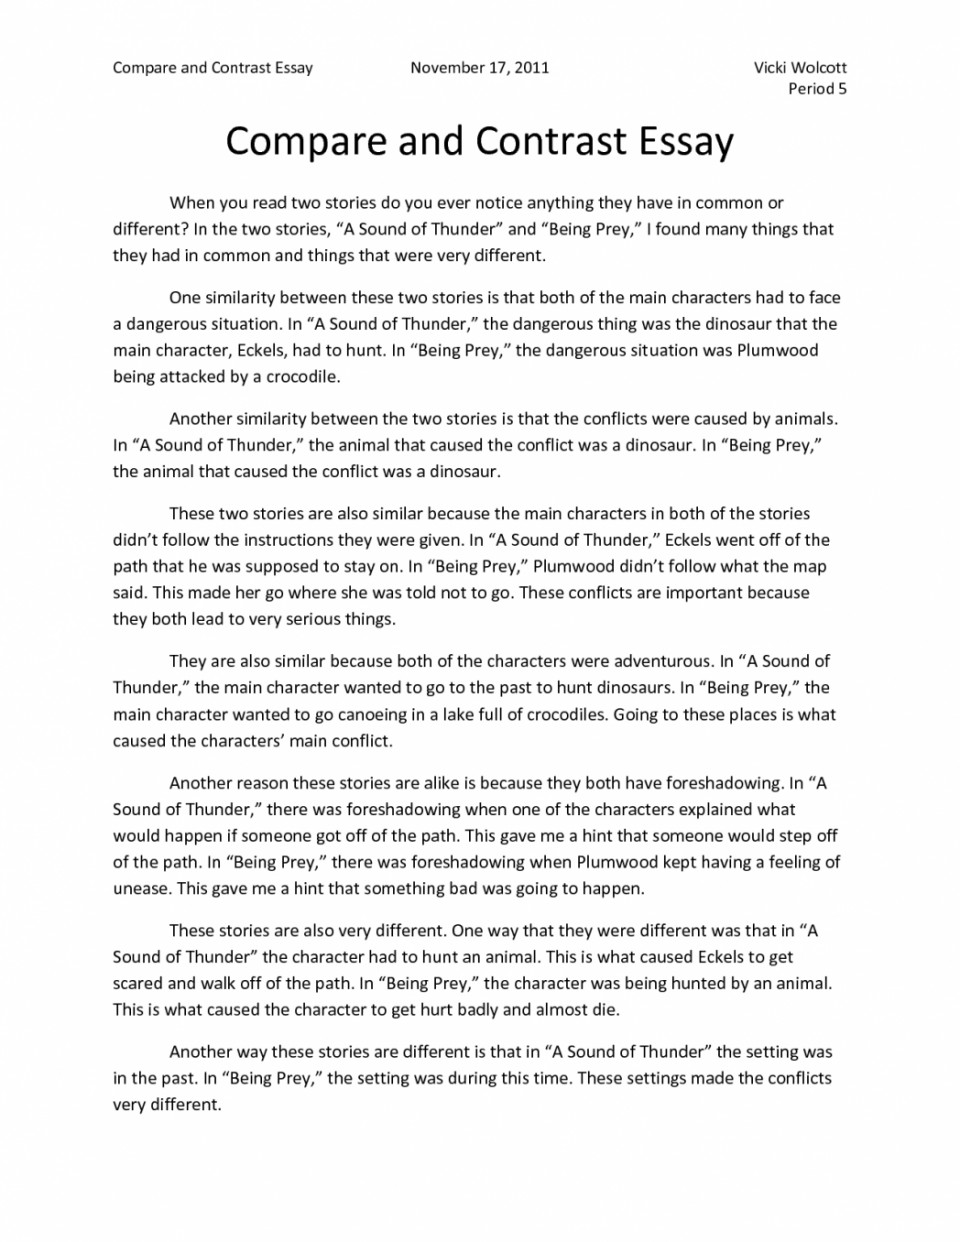 005 Contrast Essay Topics Example Good Compare And For College Easy Argumentative Students Astounding Examples High School Middle 960